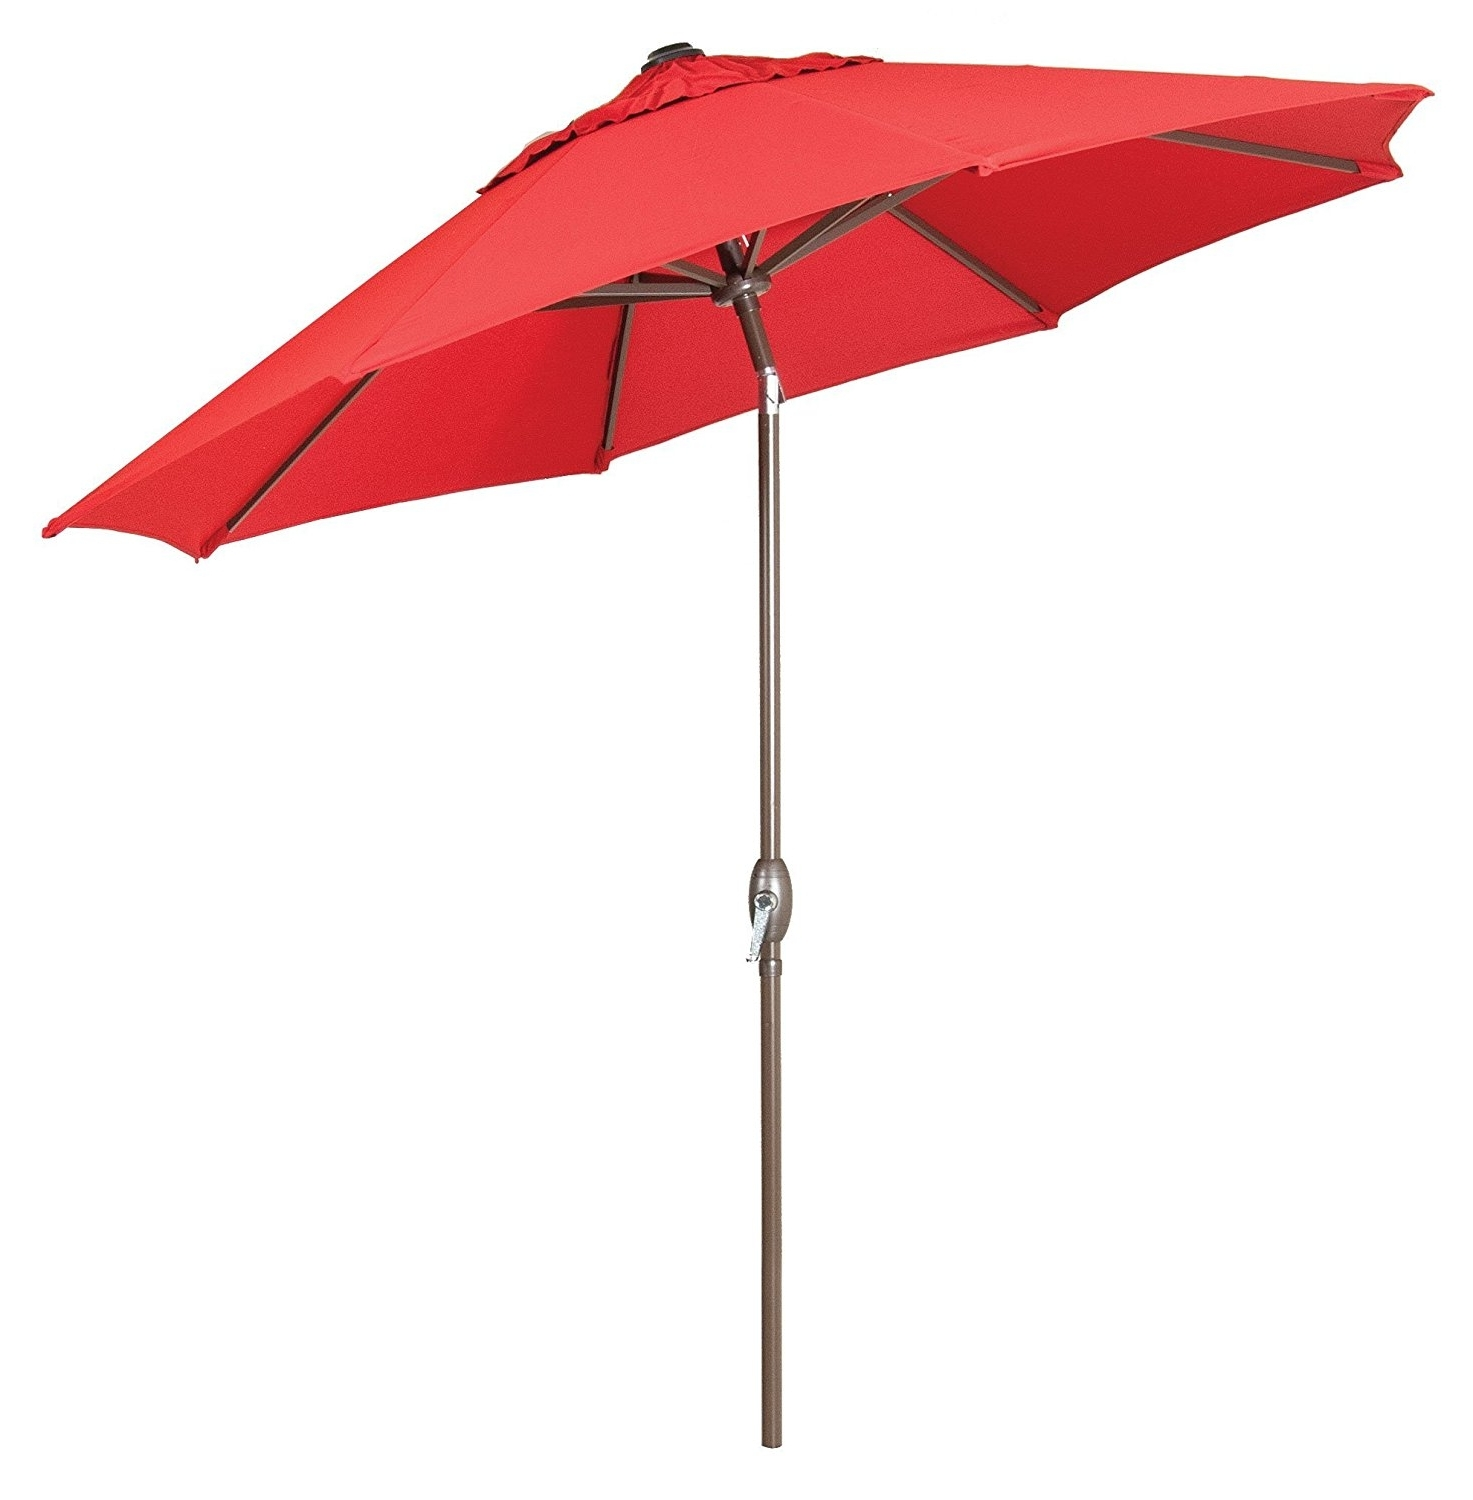 Current Premium Market Outdoor Patio Umbrella  Bright Red (Crank & Tilt Intended For Red Patio Umbrellas (View 3 of 20)